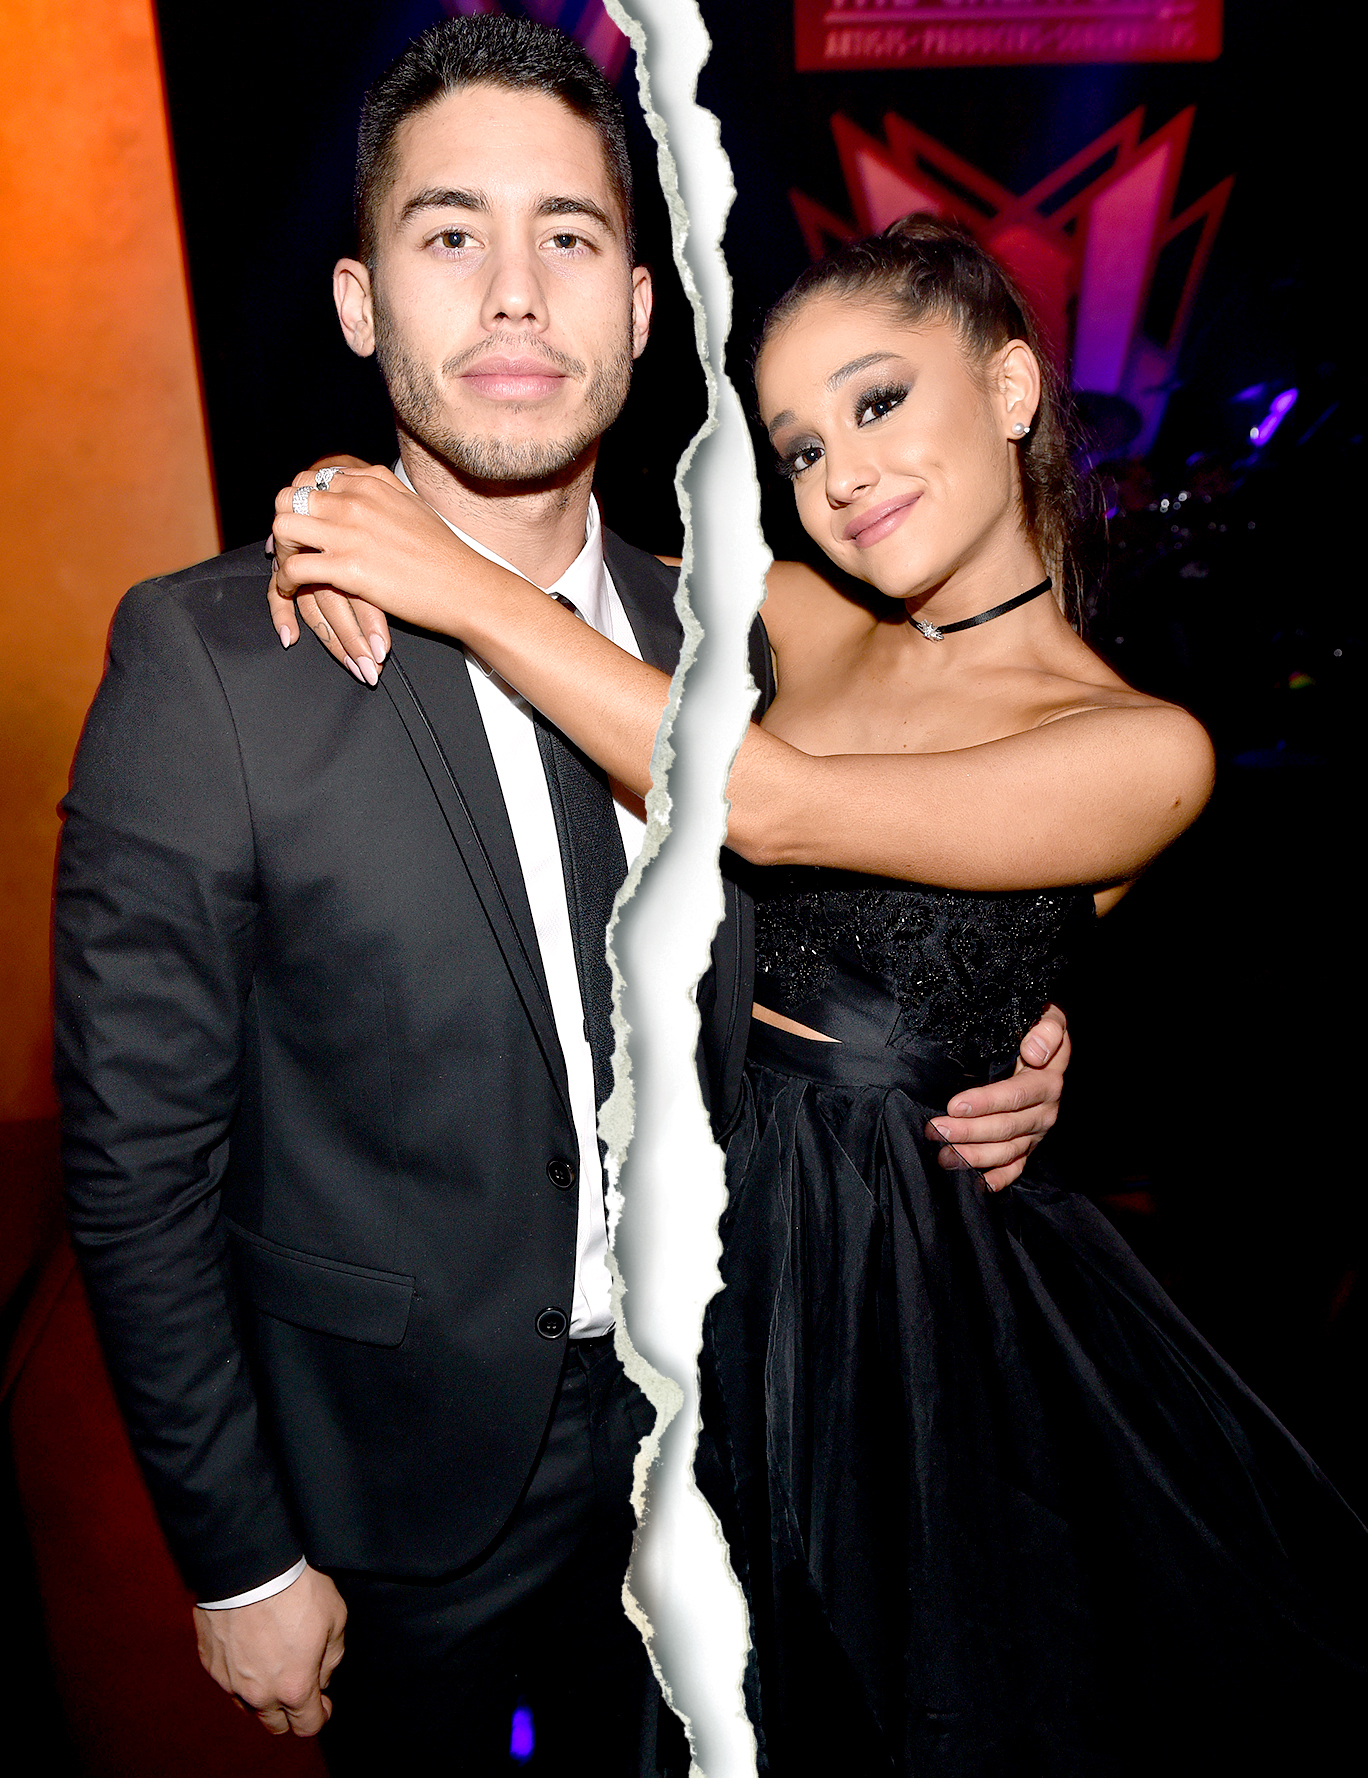 Dated ariana is who that ricky Who Is